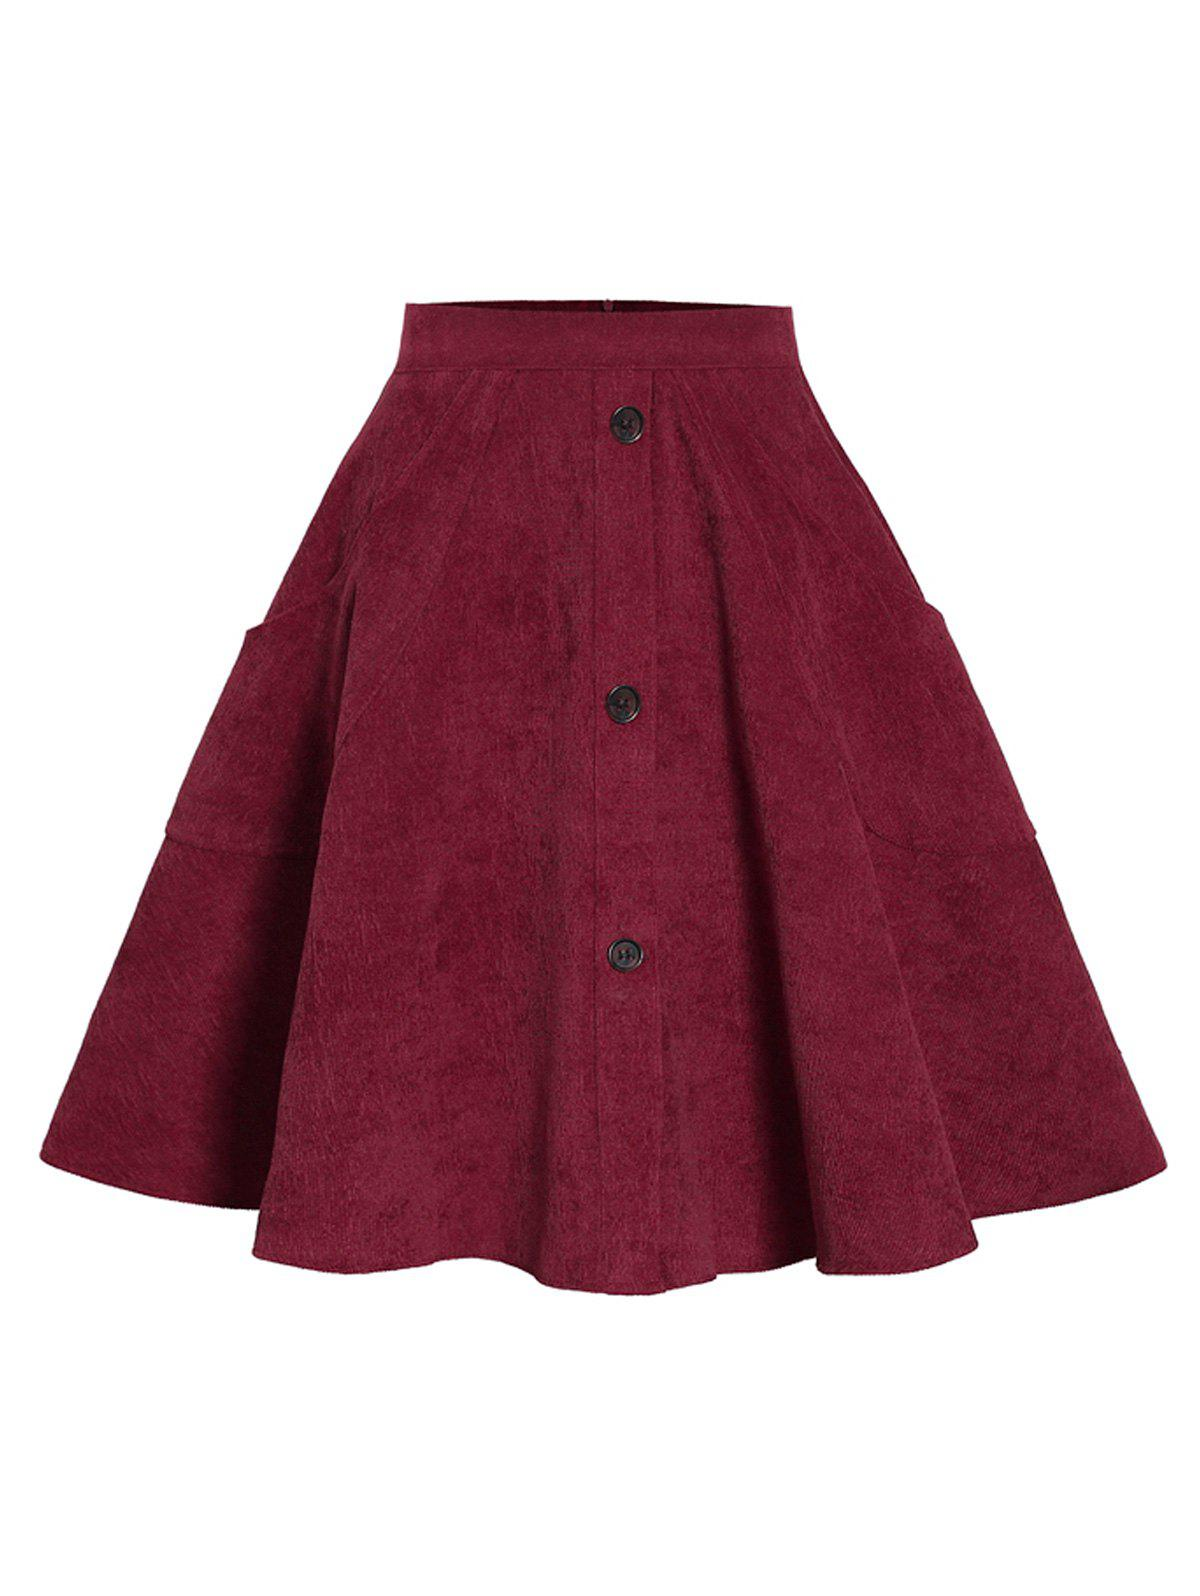 Corduroy Mock Button Pocket Skirt - RED WINE XL